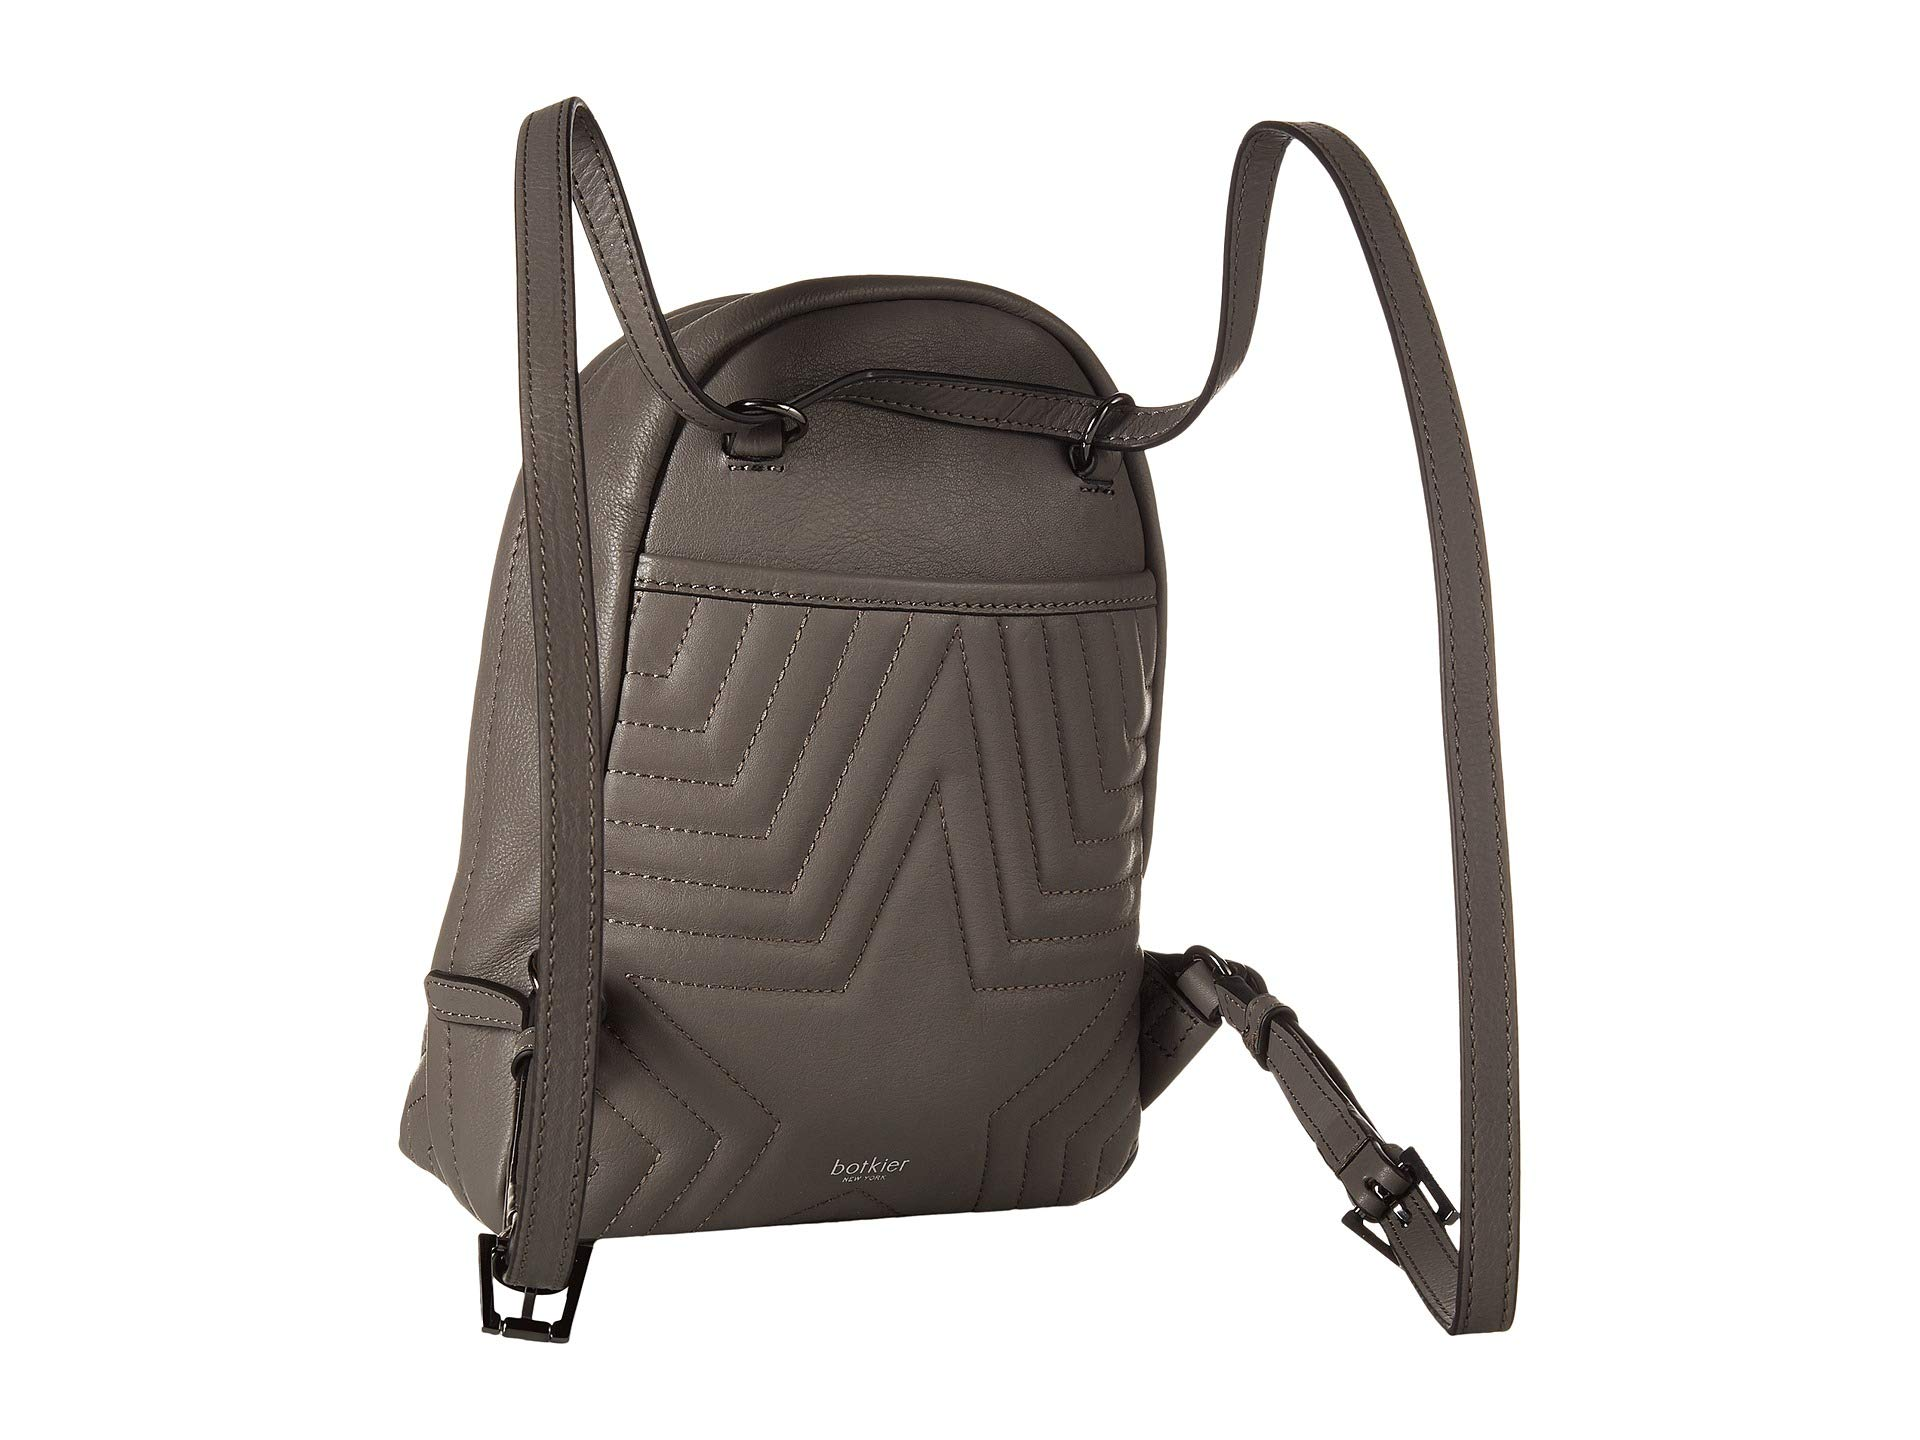 Botkier Moto Botkier Pewter Botkier Moto Backpack Pewter Backpack Pewter Moto Backpack Botkier Moto qBpp5